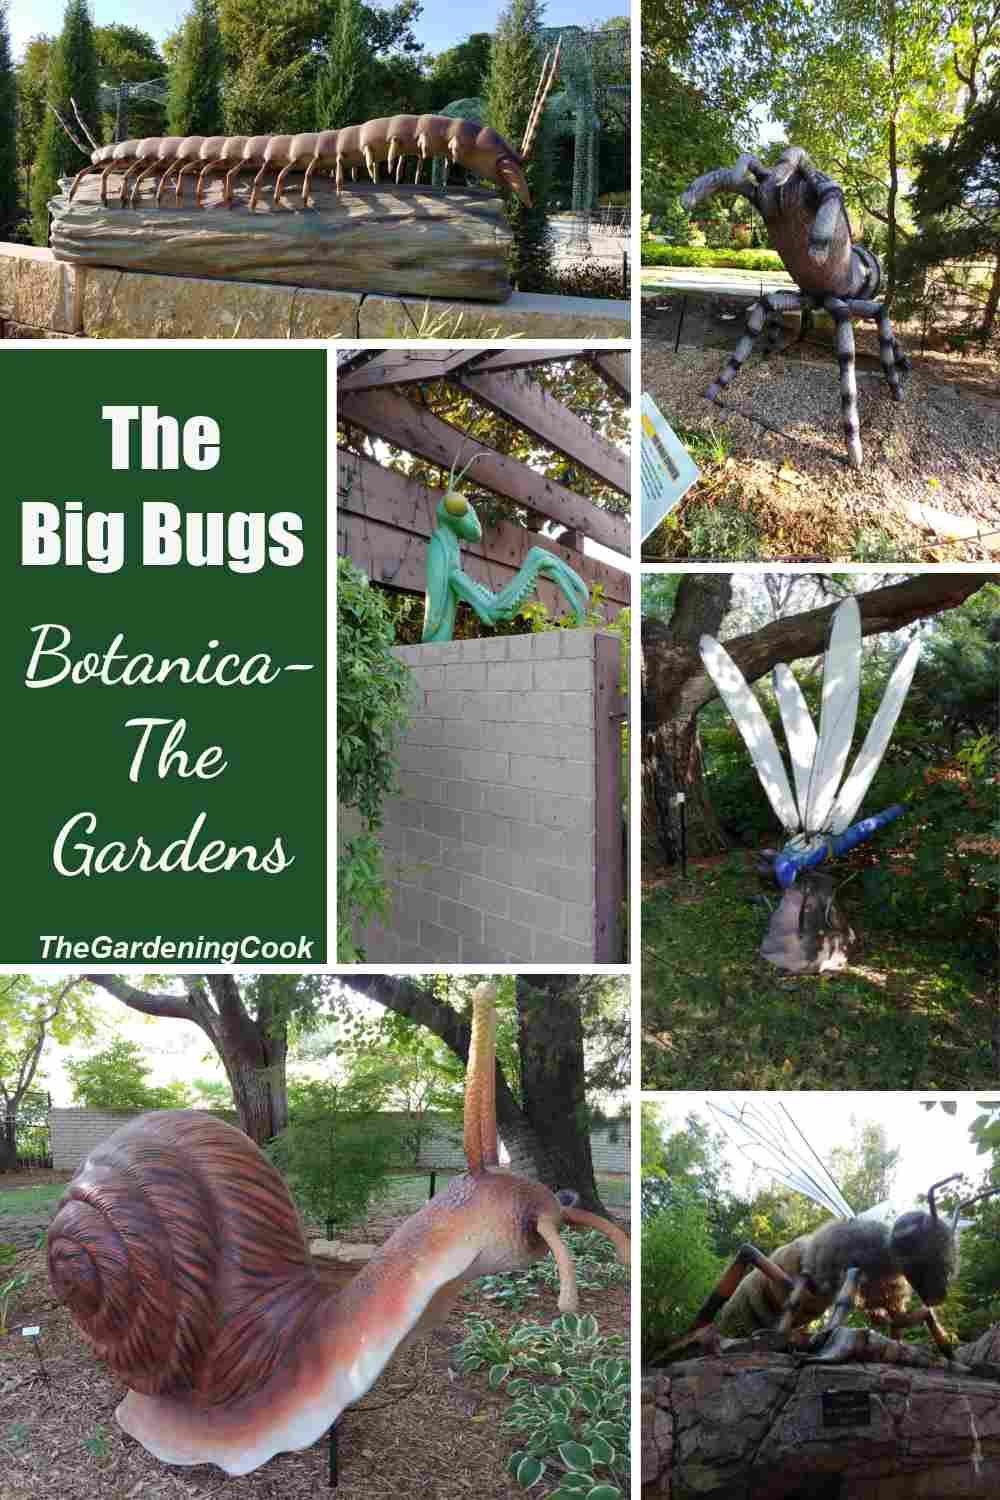 Giant bugs and insects in a collage with words The Big Bugs - Botanica The Wichita Gardens.